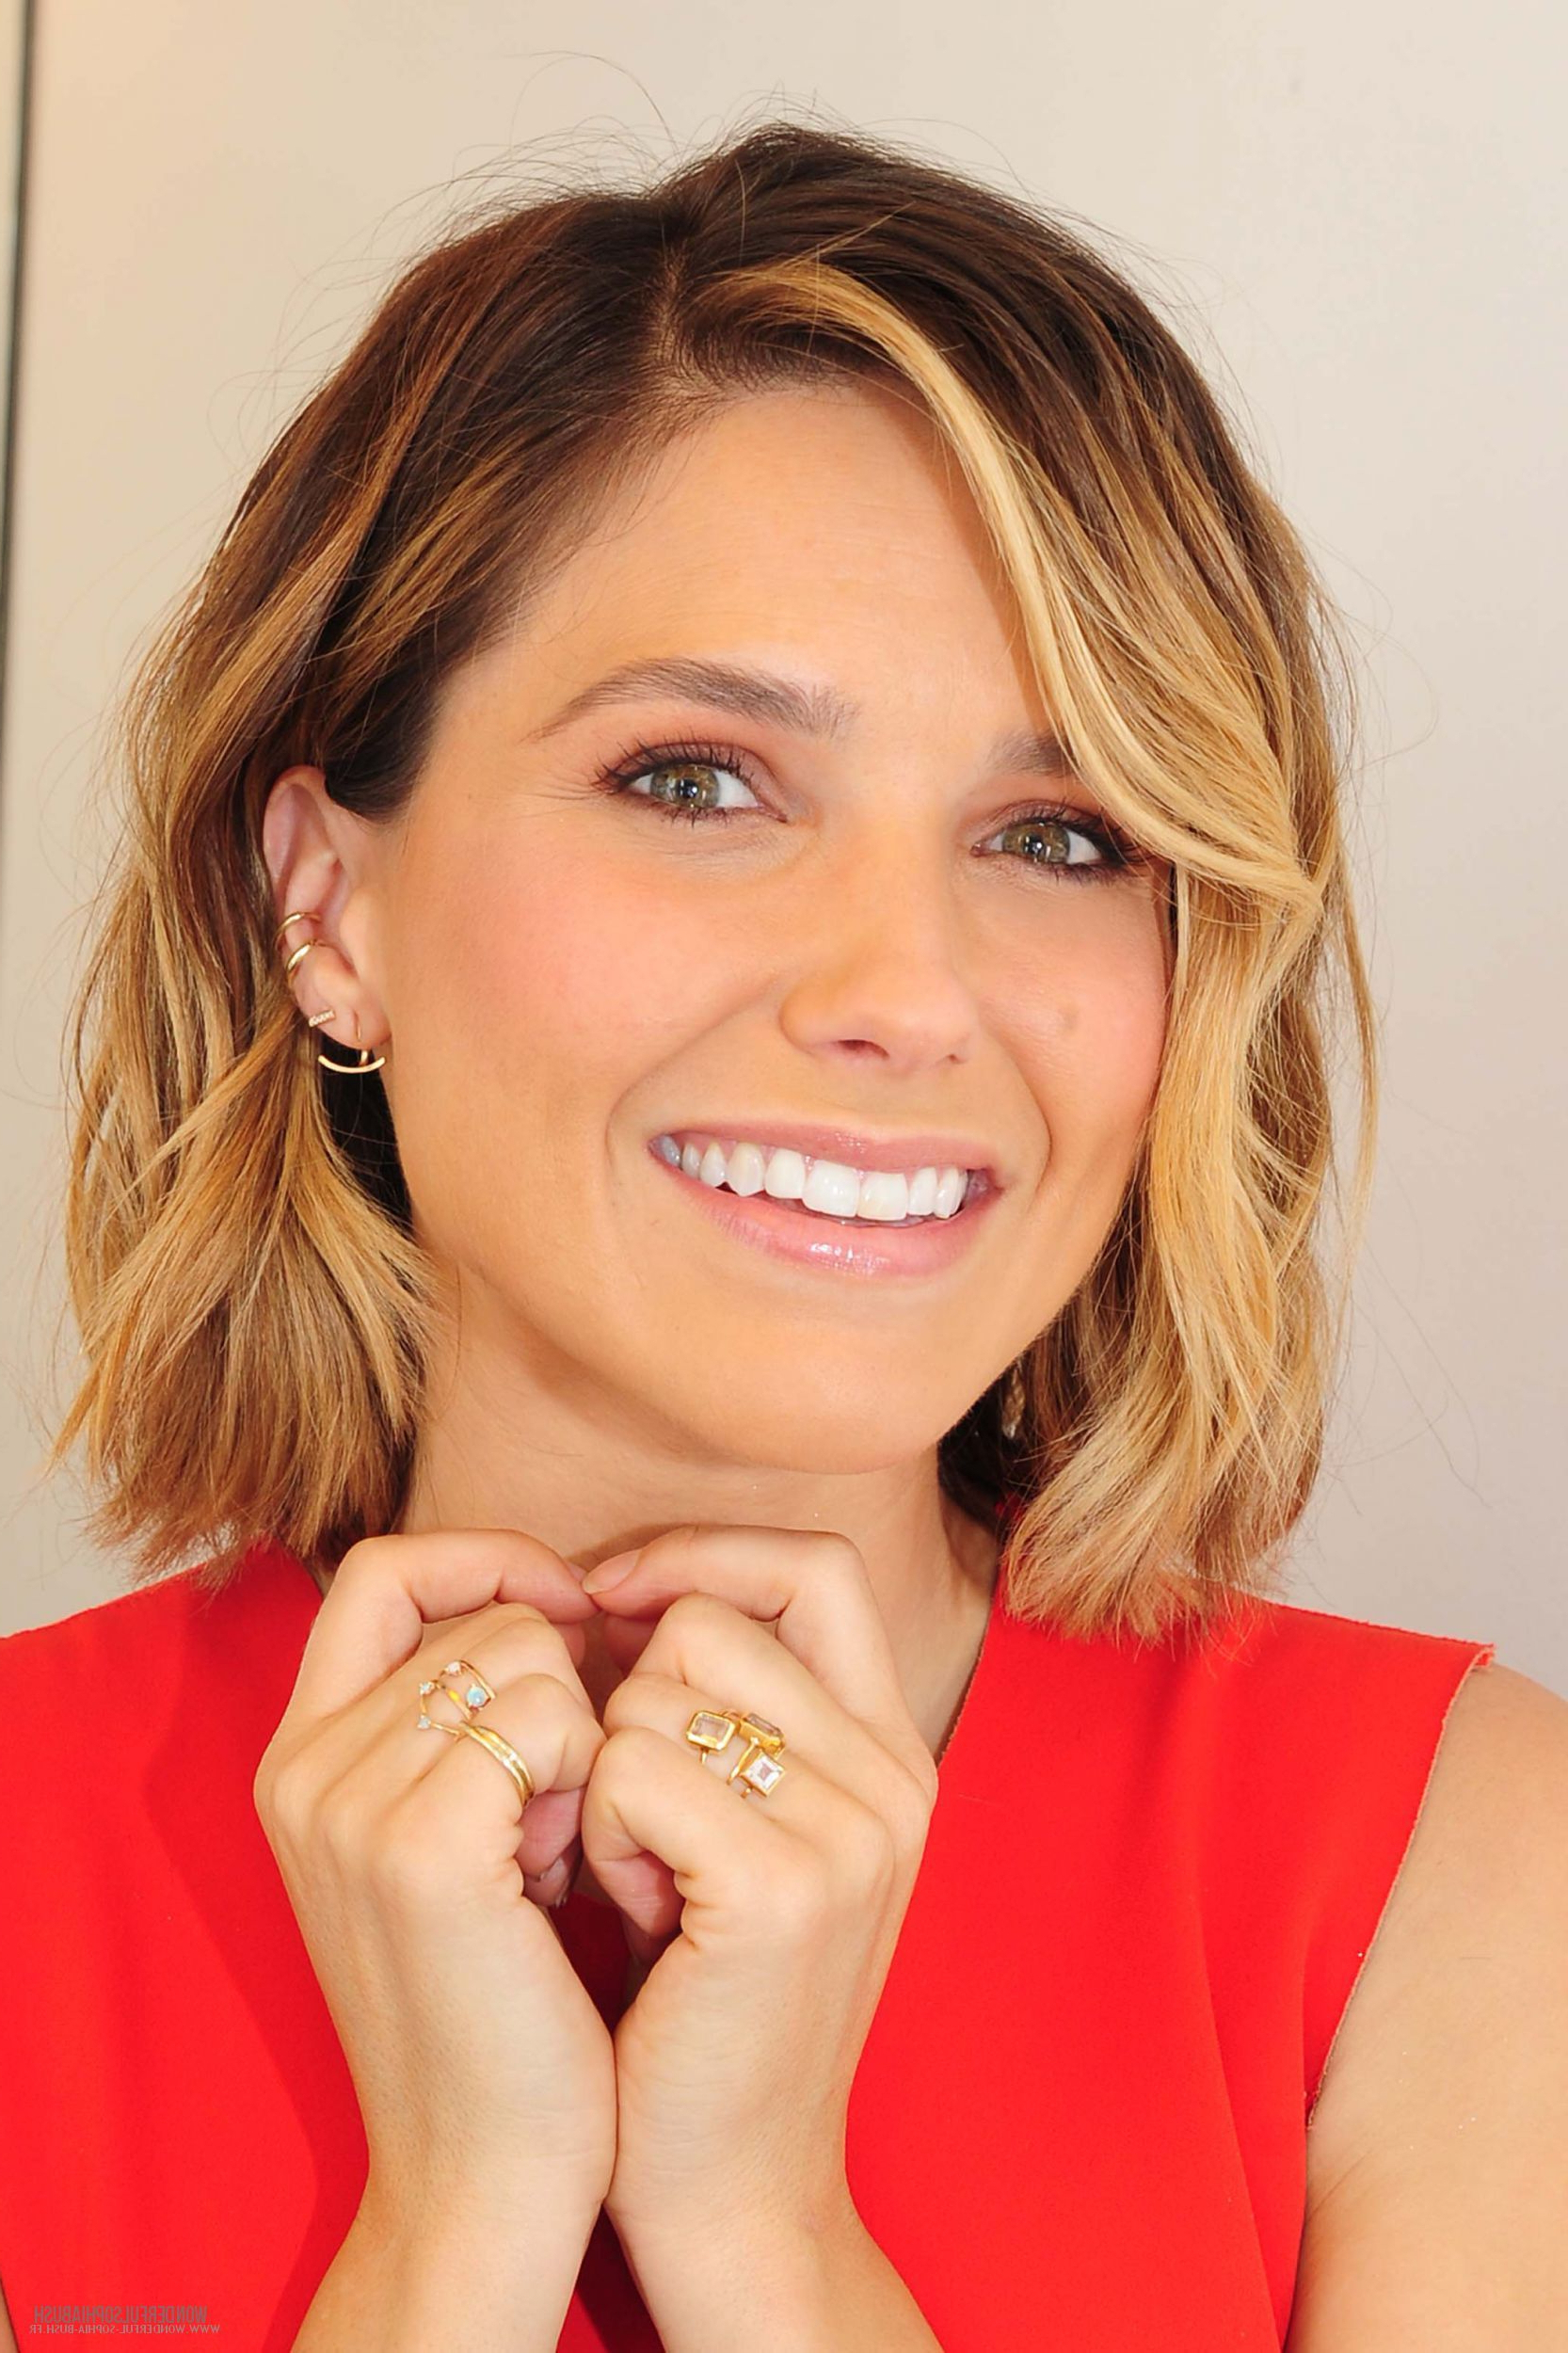 Popular Sophia Bush Medium Hairstyles With Sophia Bush Medium Hair Sophia Bush Nbc Studios 014 Cliquer Sur L (View 10 of 20)